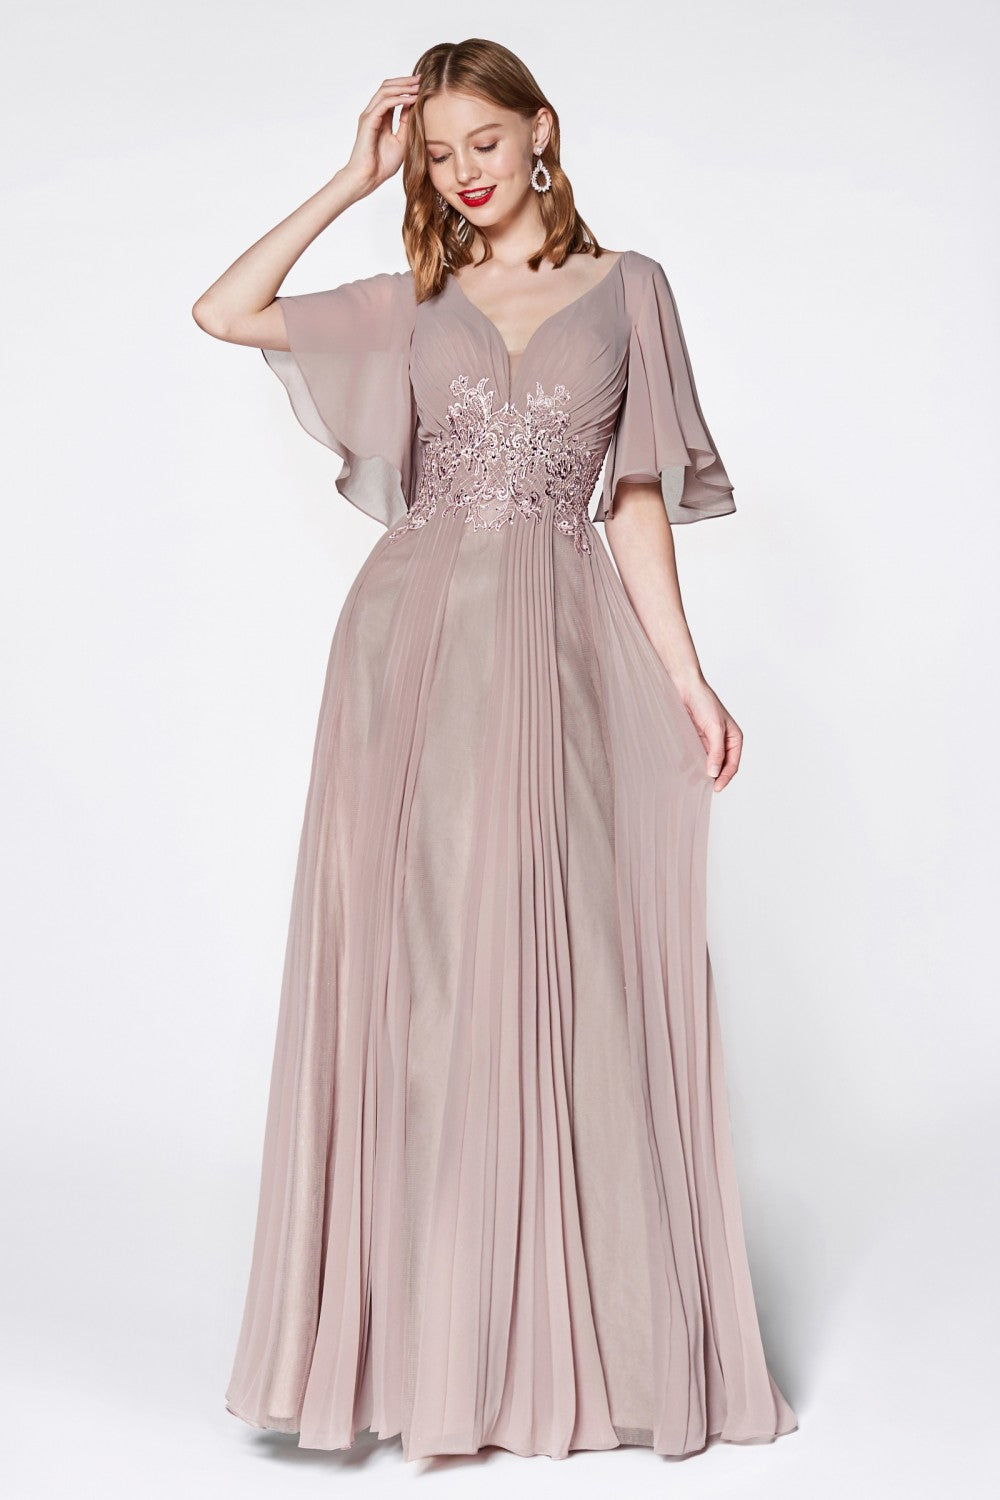 A-Line Chiffon Gown With Flutter Sleeves And Lace Details